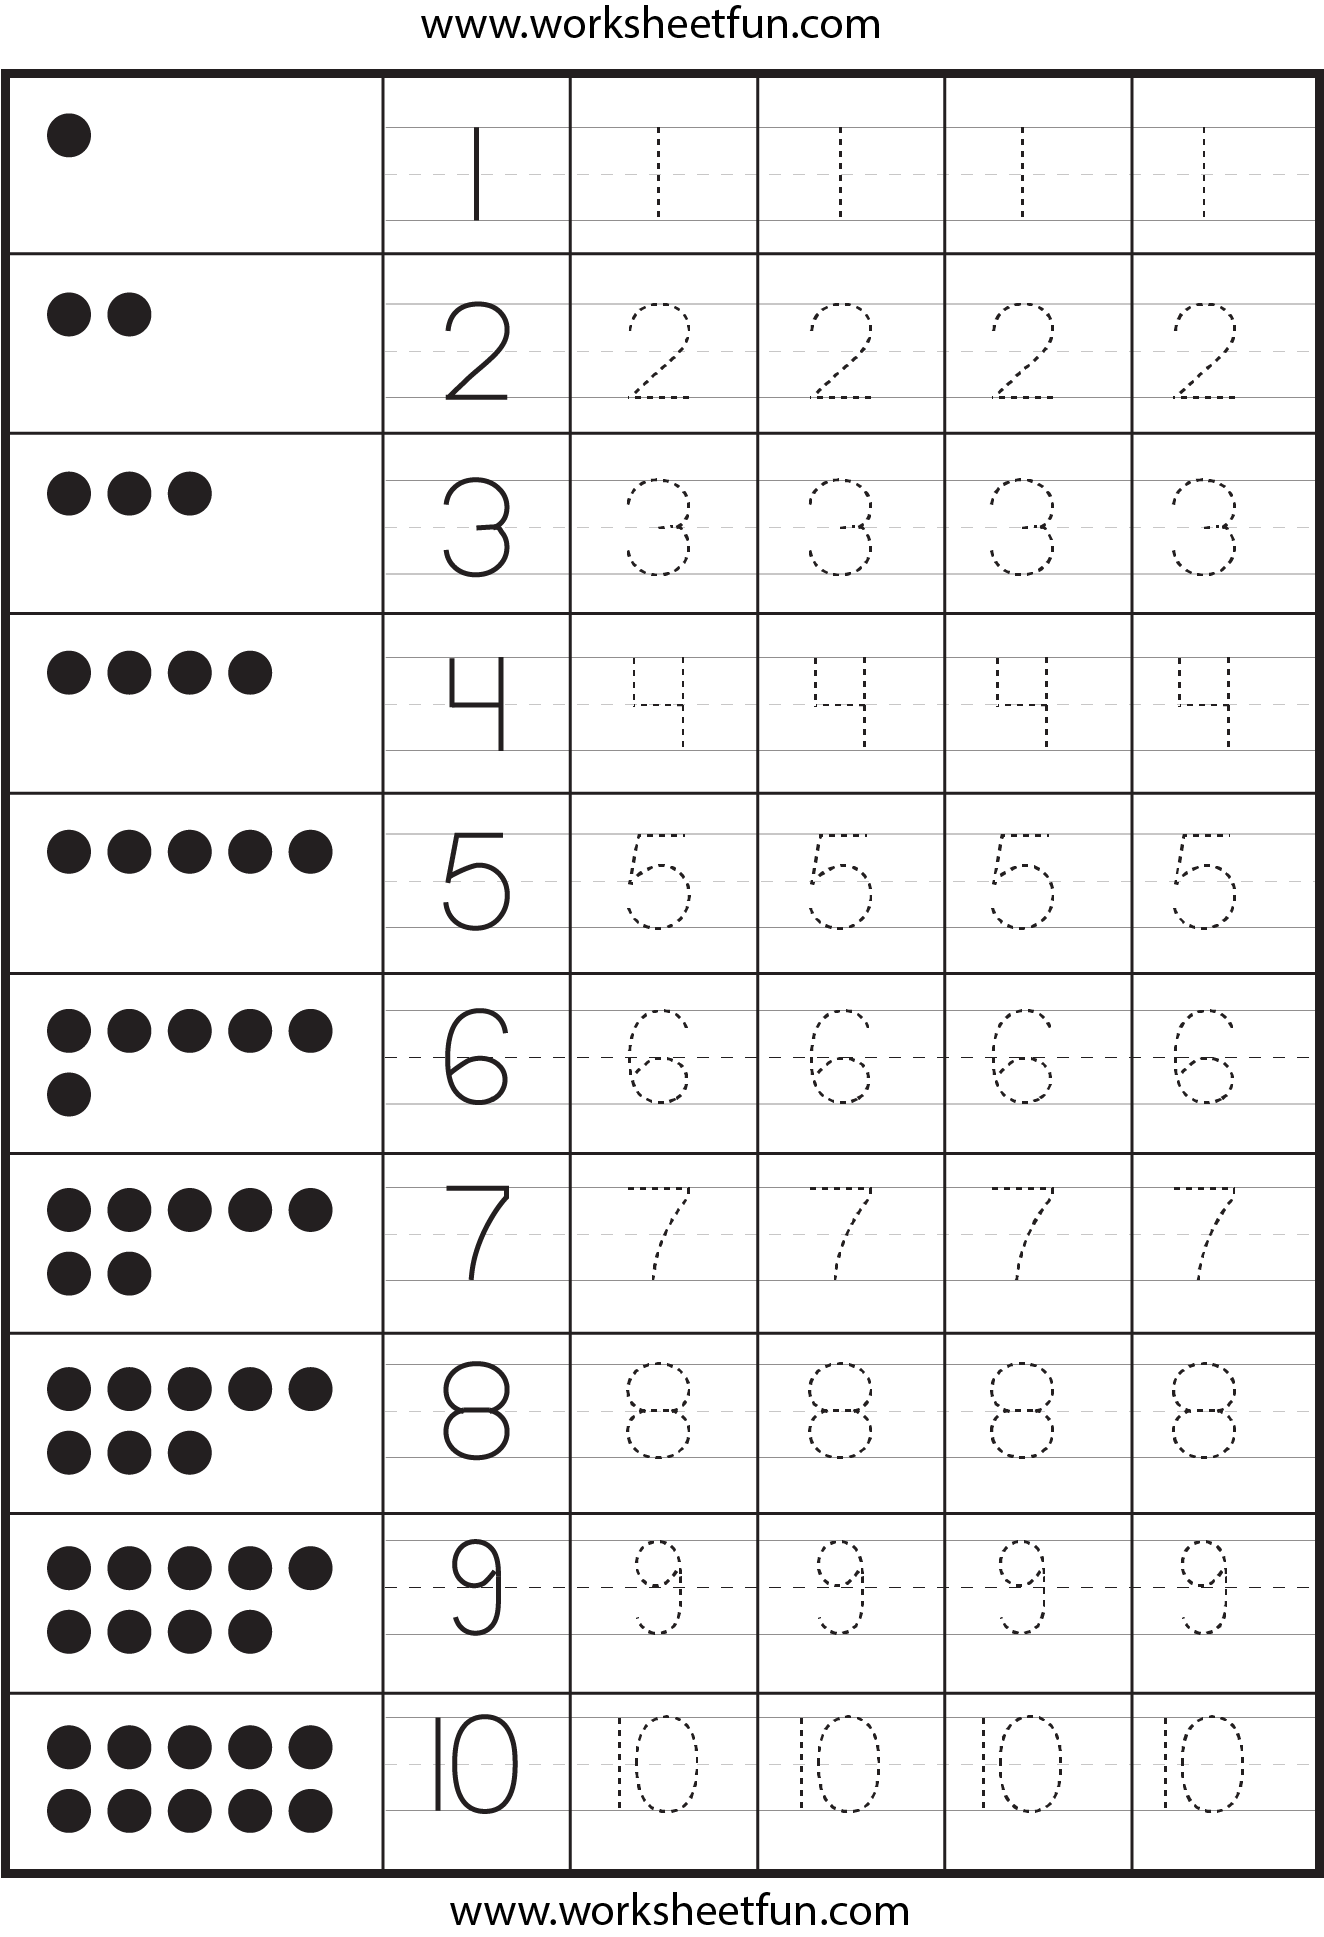 7 Best Images of 2 Free Printable Number Tracing Worksheet ...